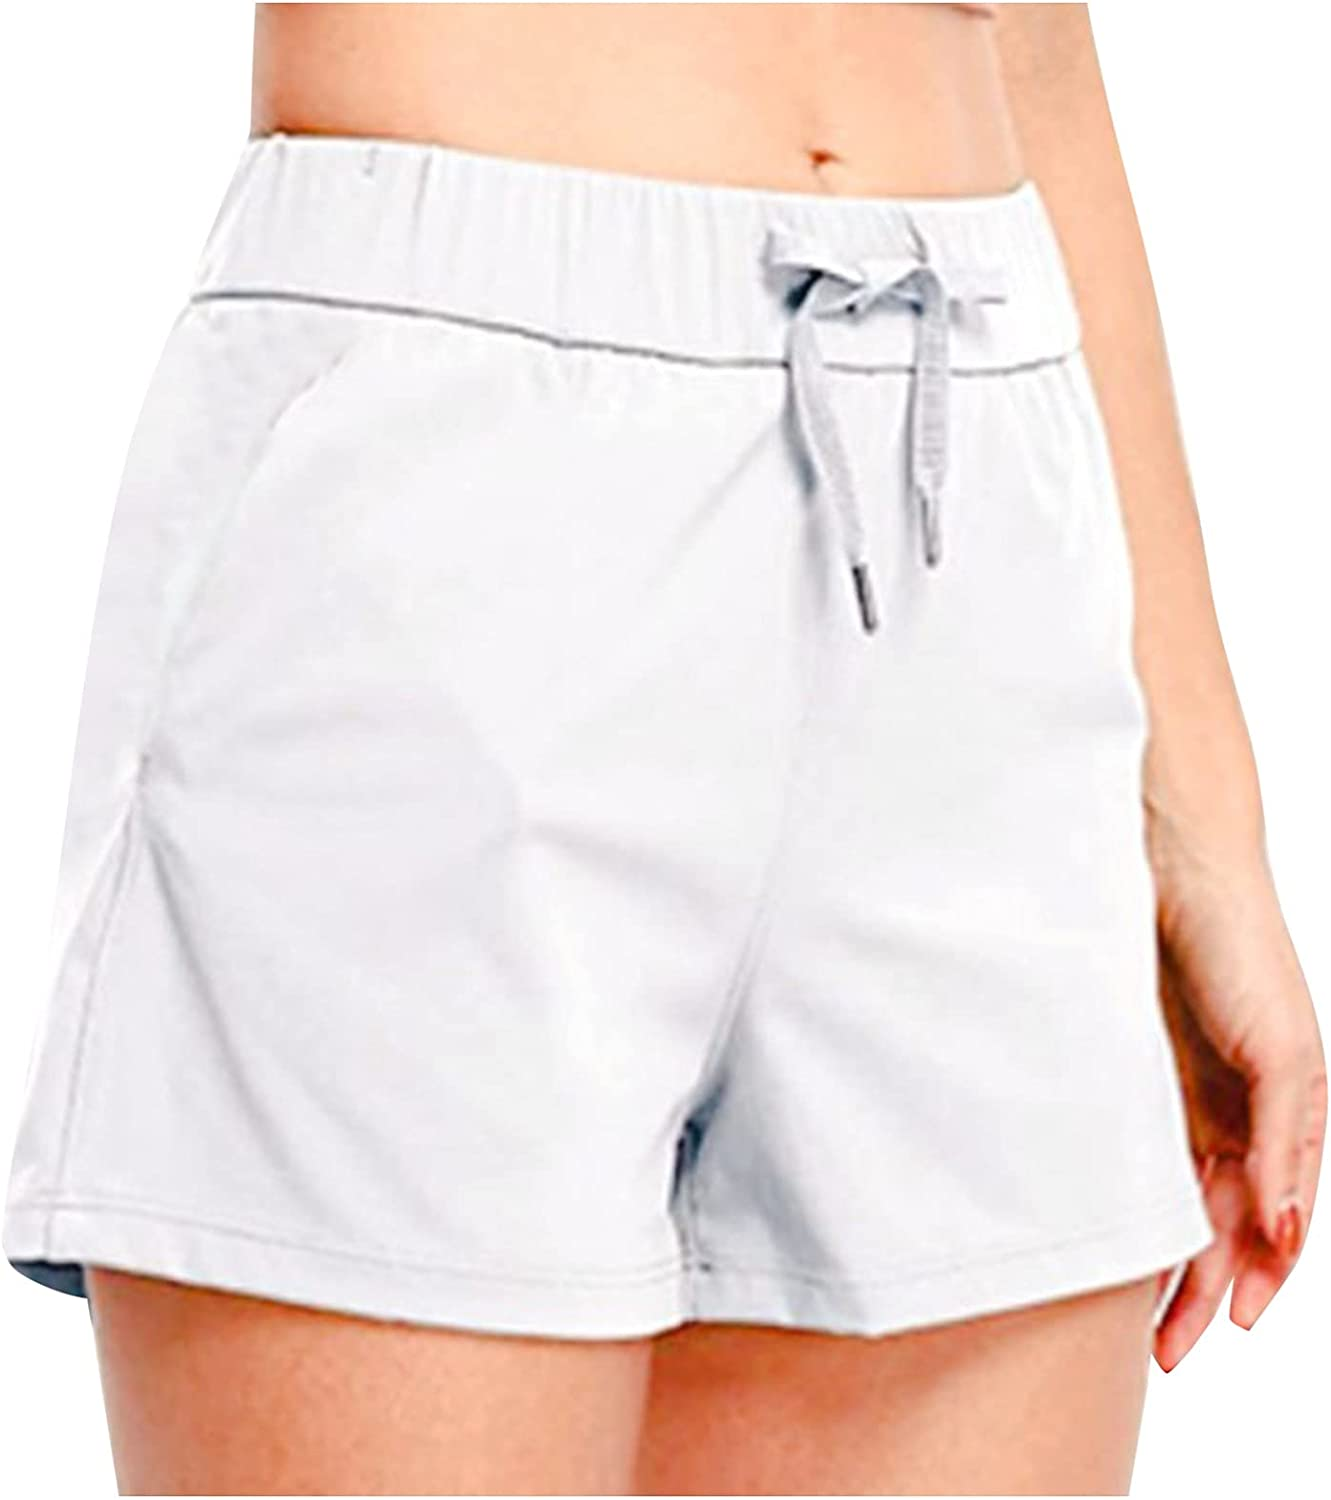 AZEWO Womens Shorts for Summer Women 5 popular Solid gift Elastic Co